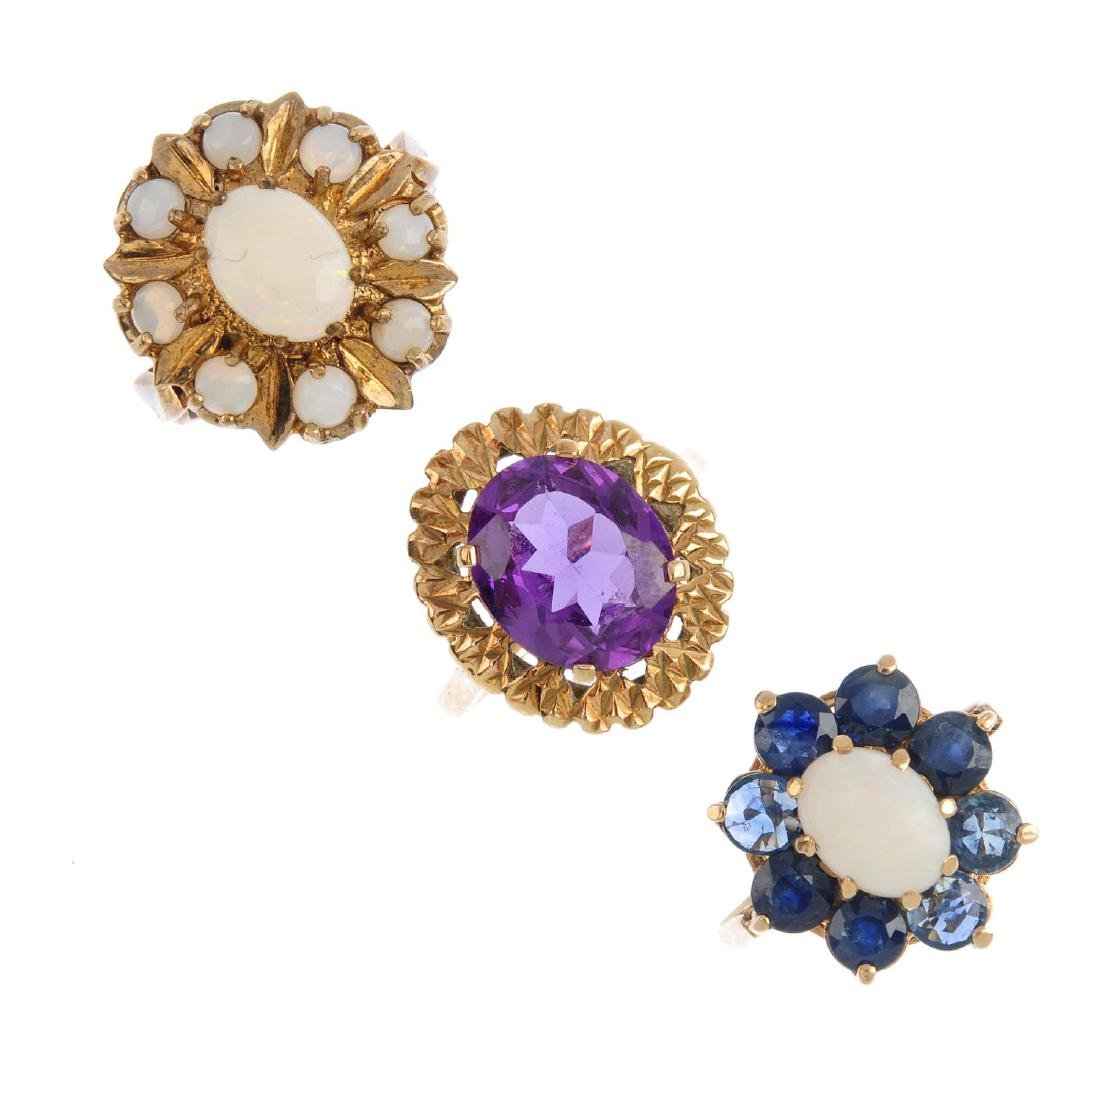 Three 9ct gold gem-set rings. To include an opal and